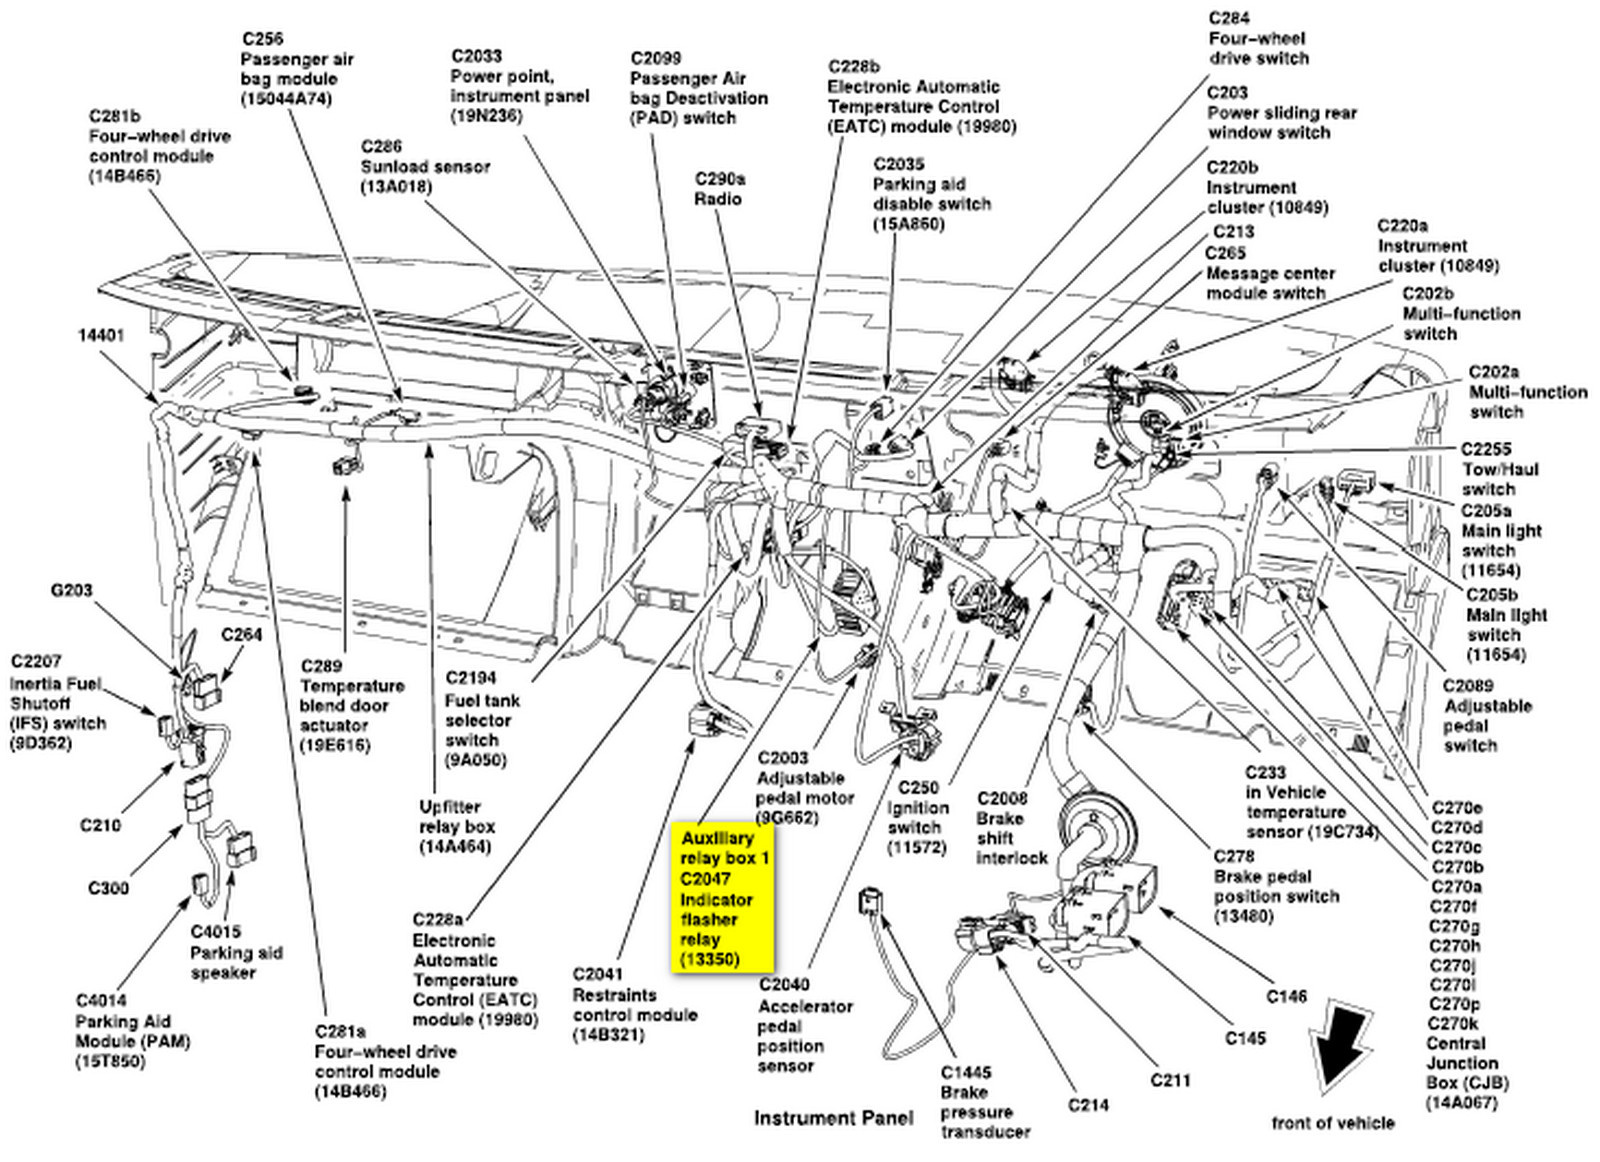 2013 Toyota Tundra Fuse Diagram Manual Of Wiring 08 Box Images Gallery